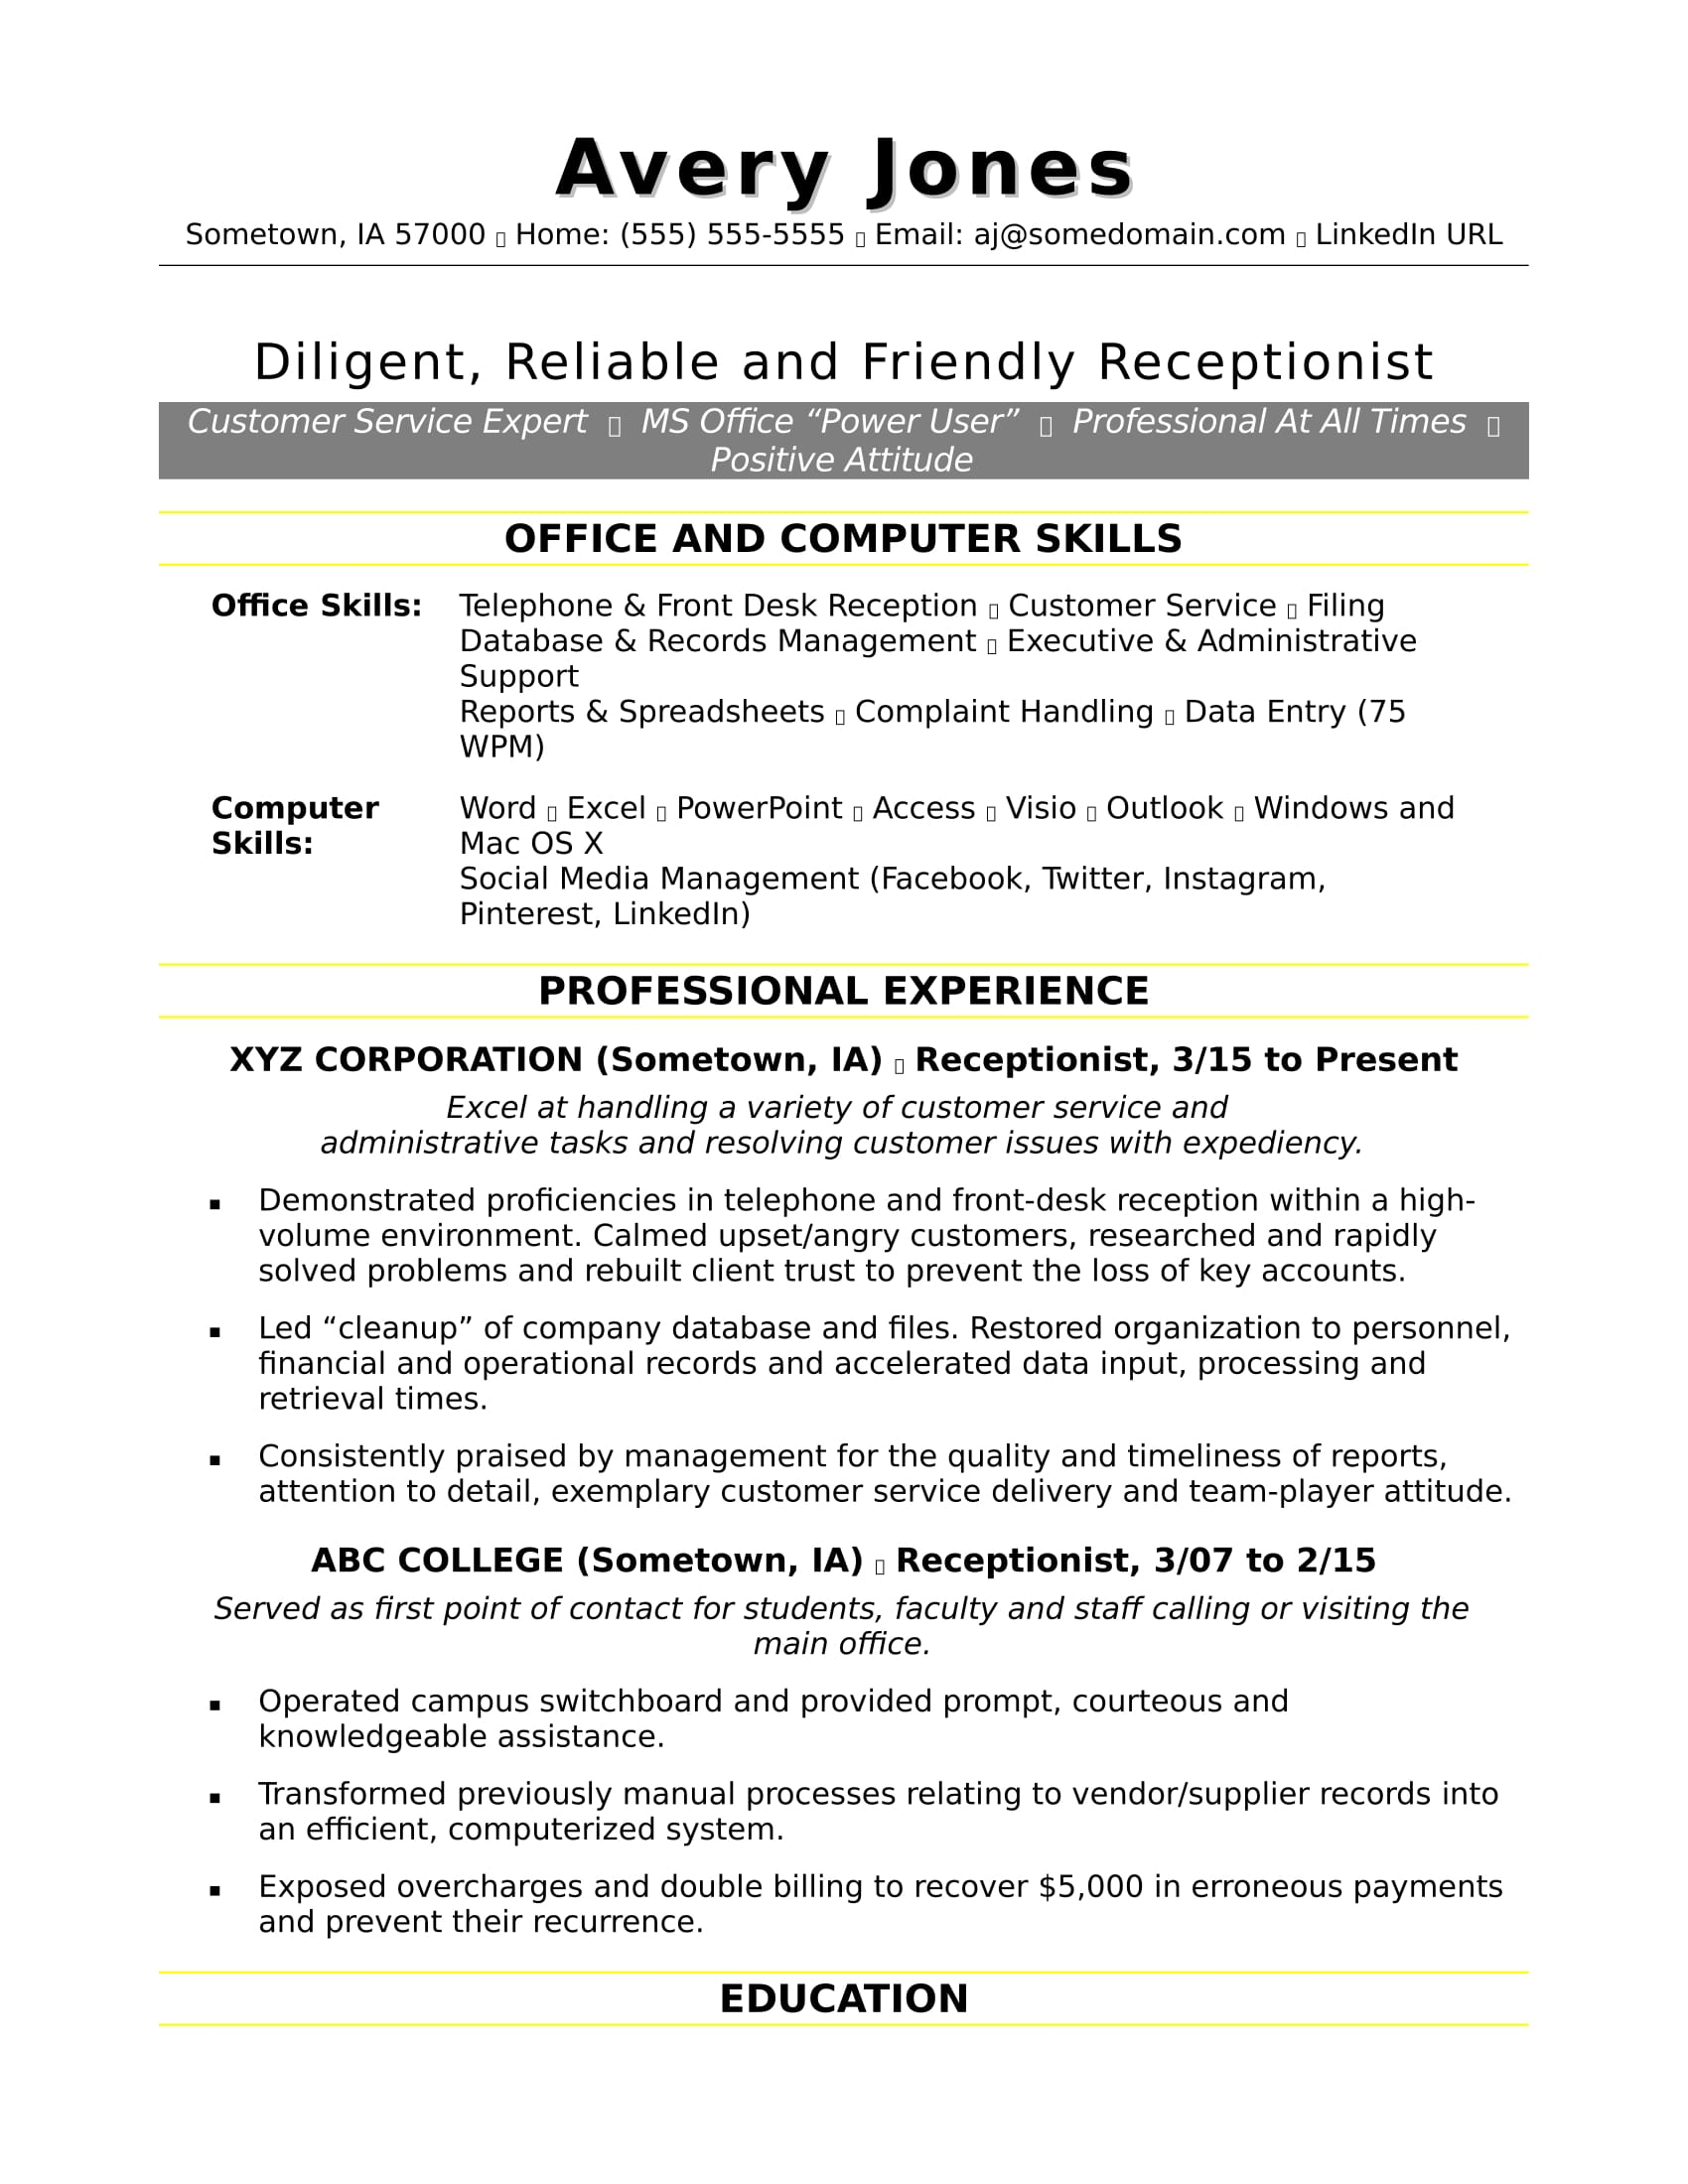 Sample Resume For A Receptionist  Tips For Writing A Resume